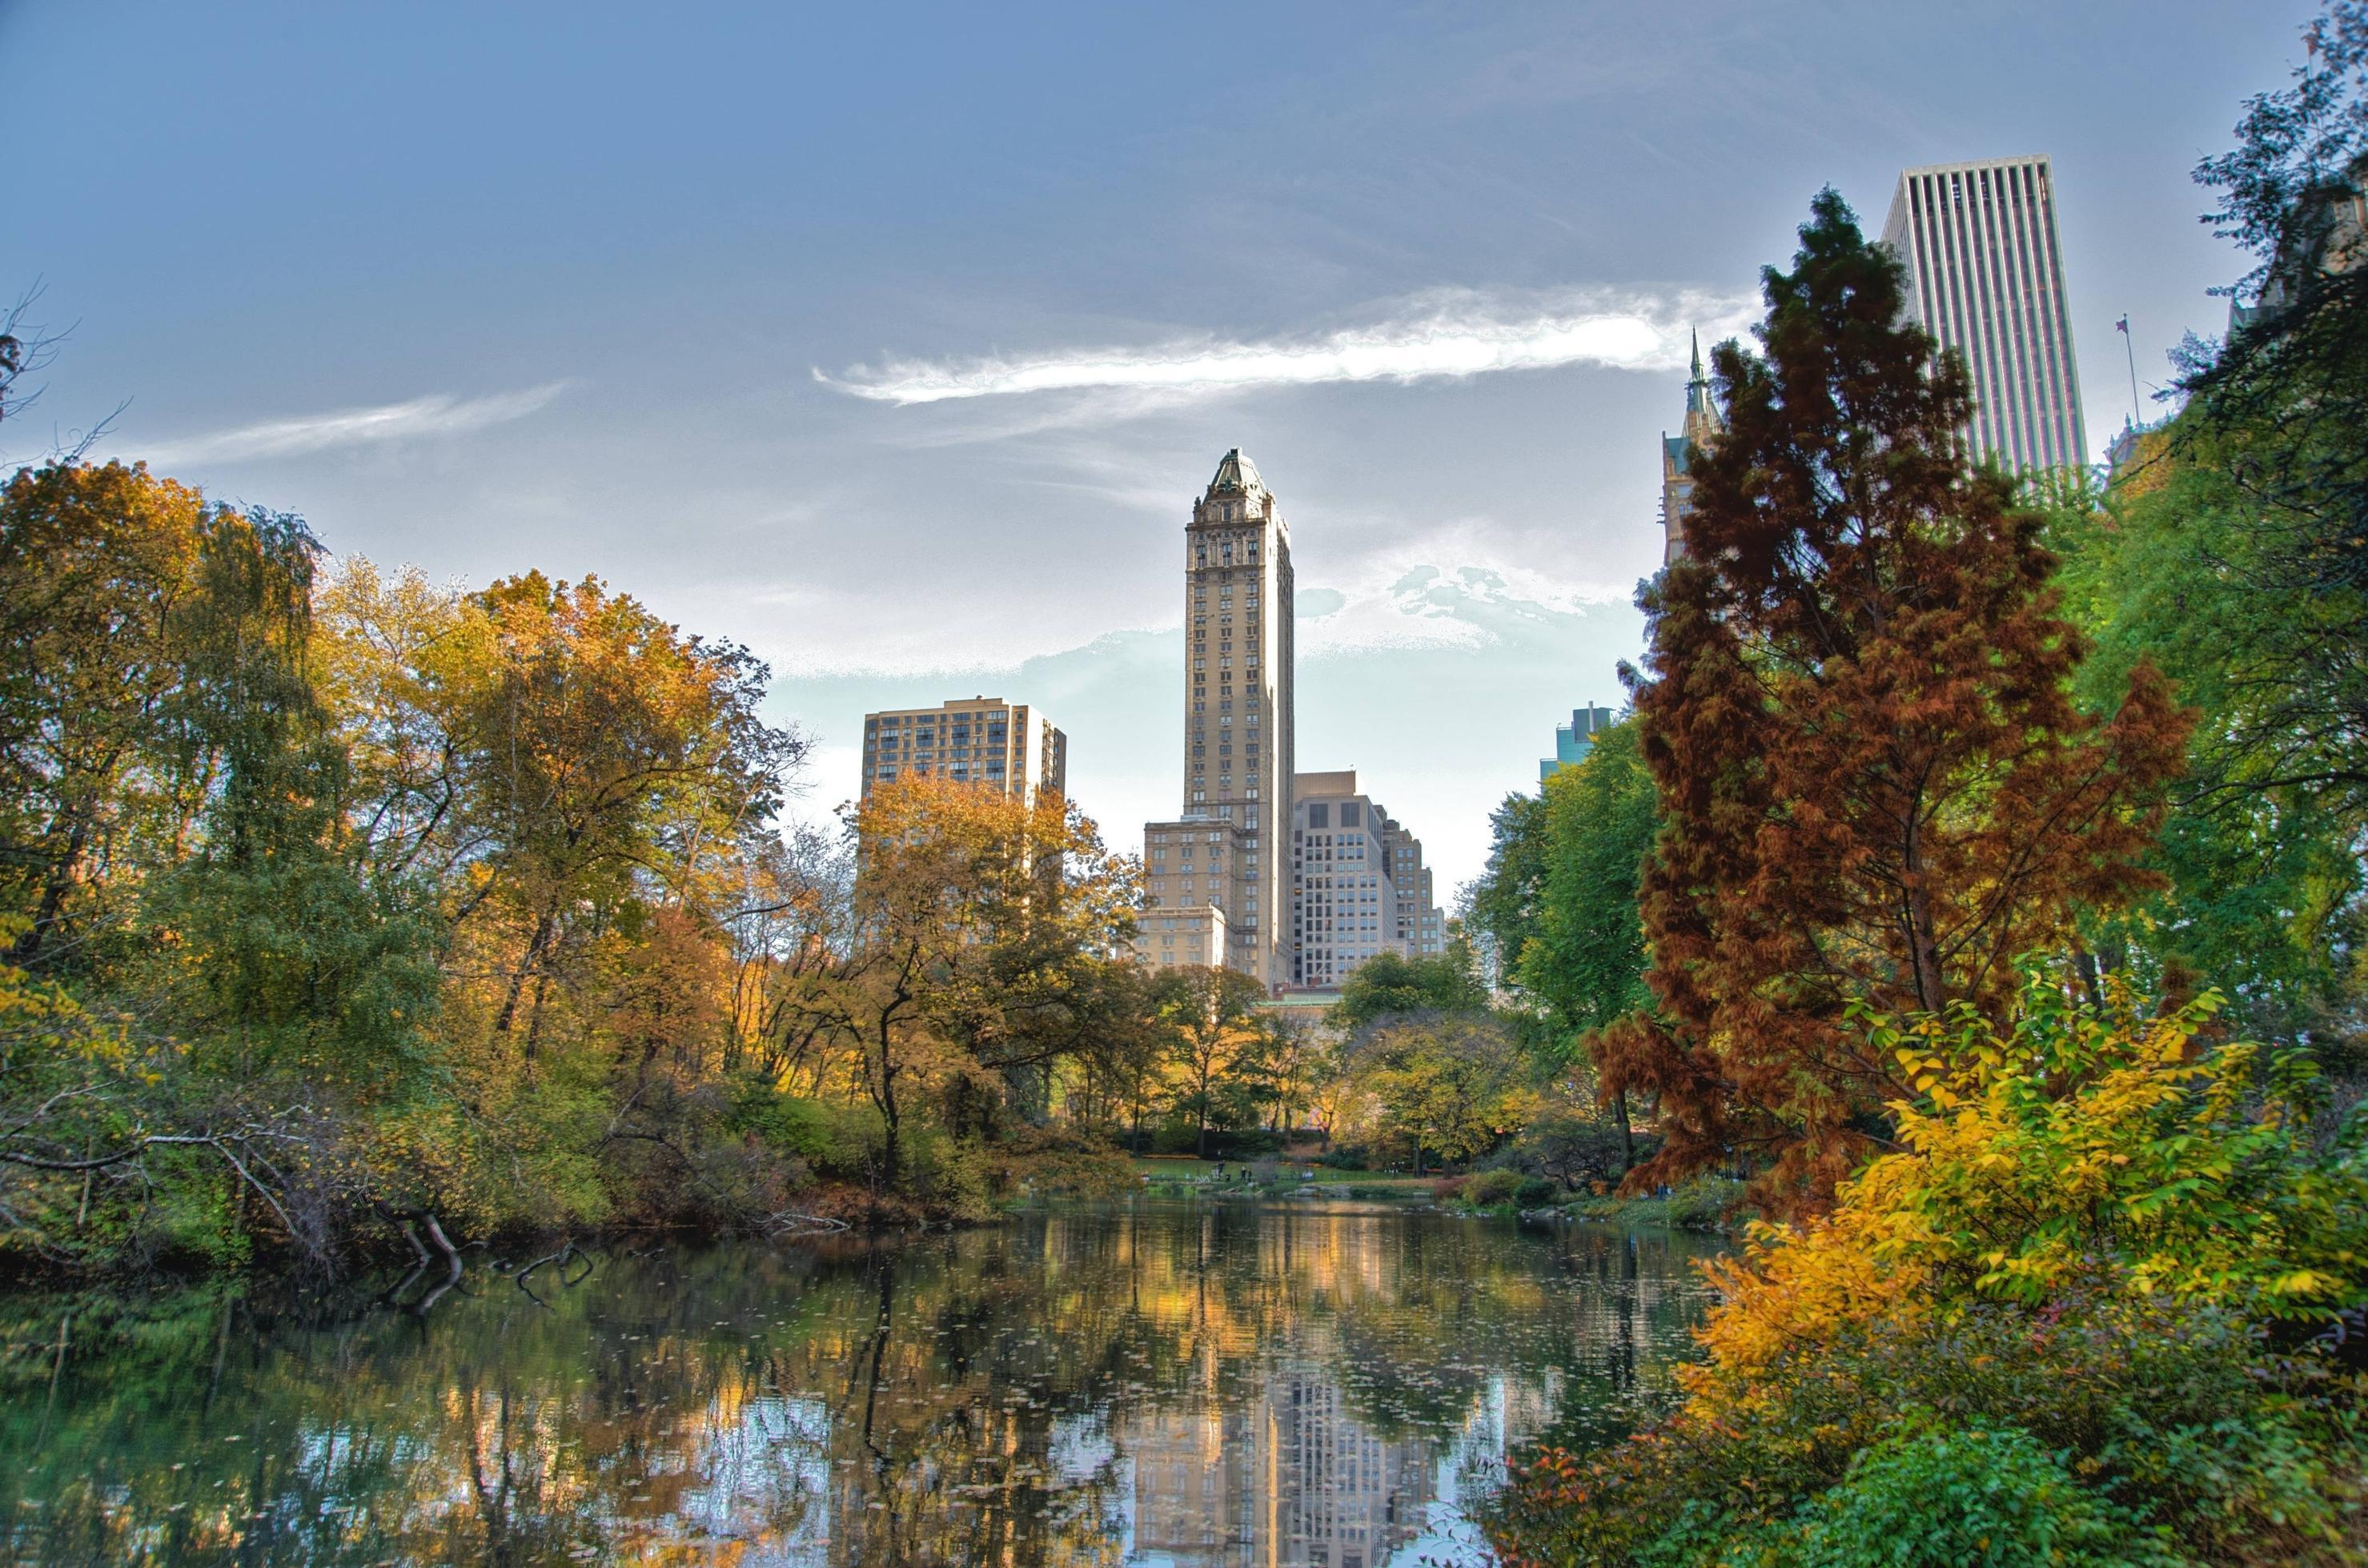 Download wallpapers Central Park, New York, lake, Skyscrapers free